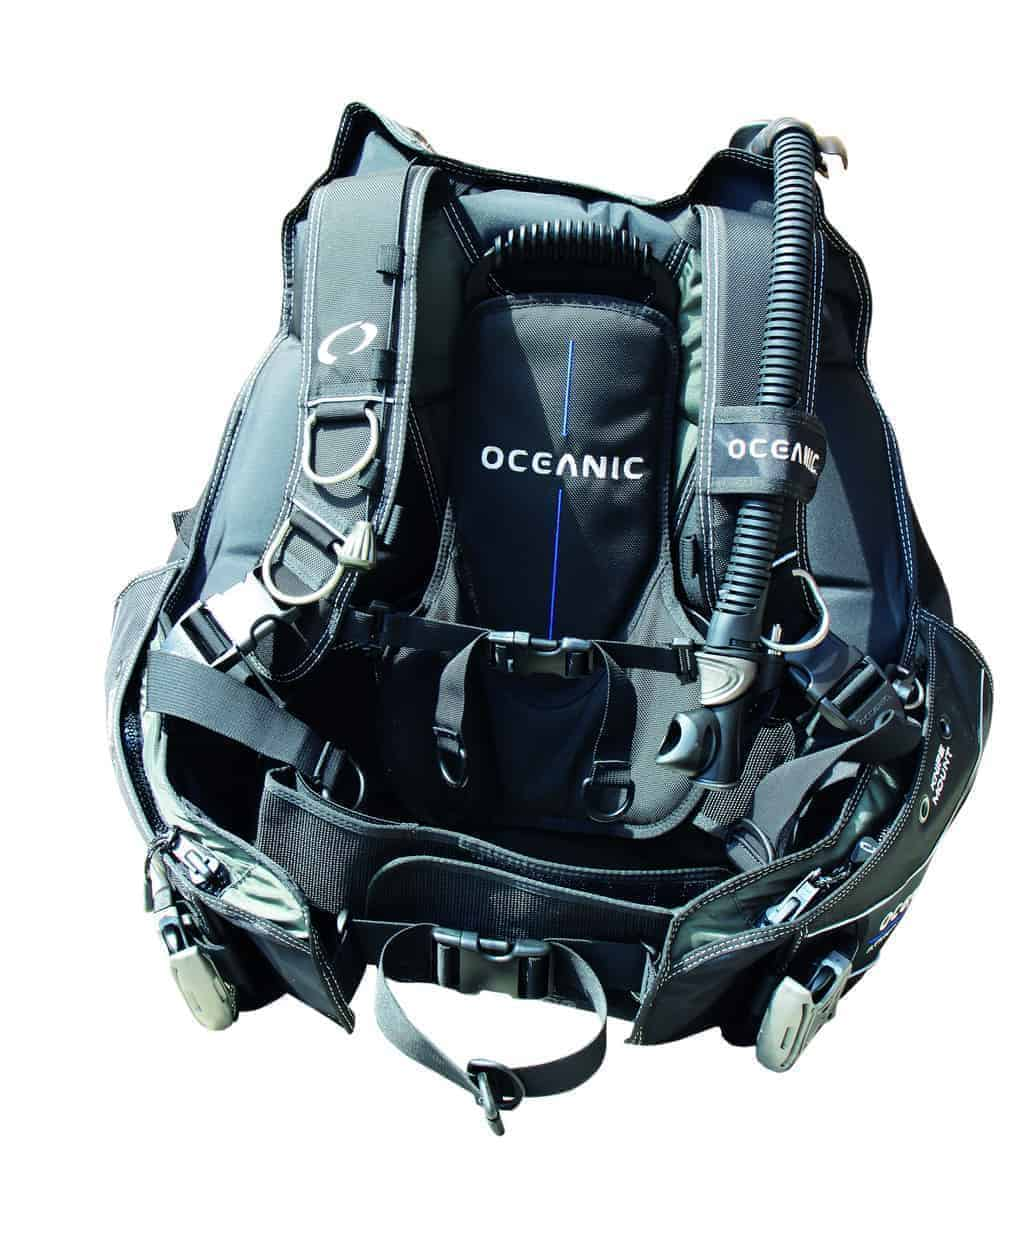 Oceanic Atmos BCD is a robustly built jacket which features an innovative hybrid aircell which provides rear-inflation for support underwater along with front inflation as per a traditional BCD for surface support.